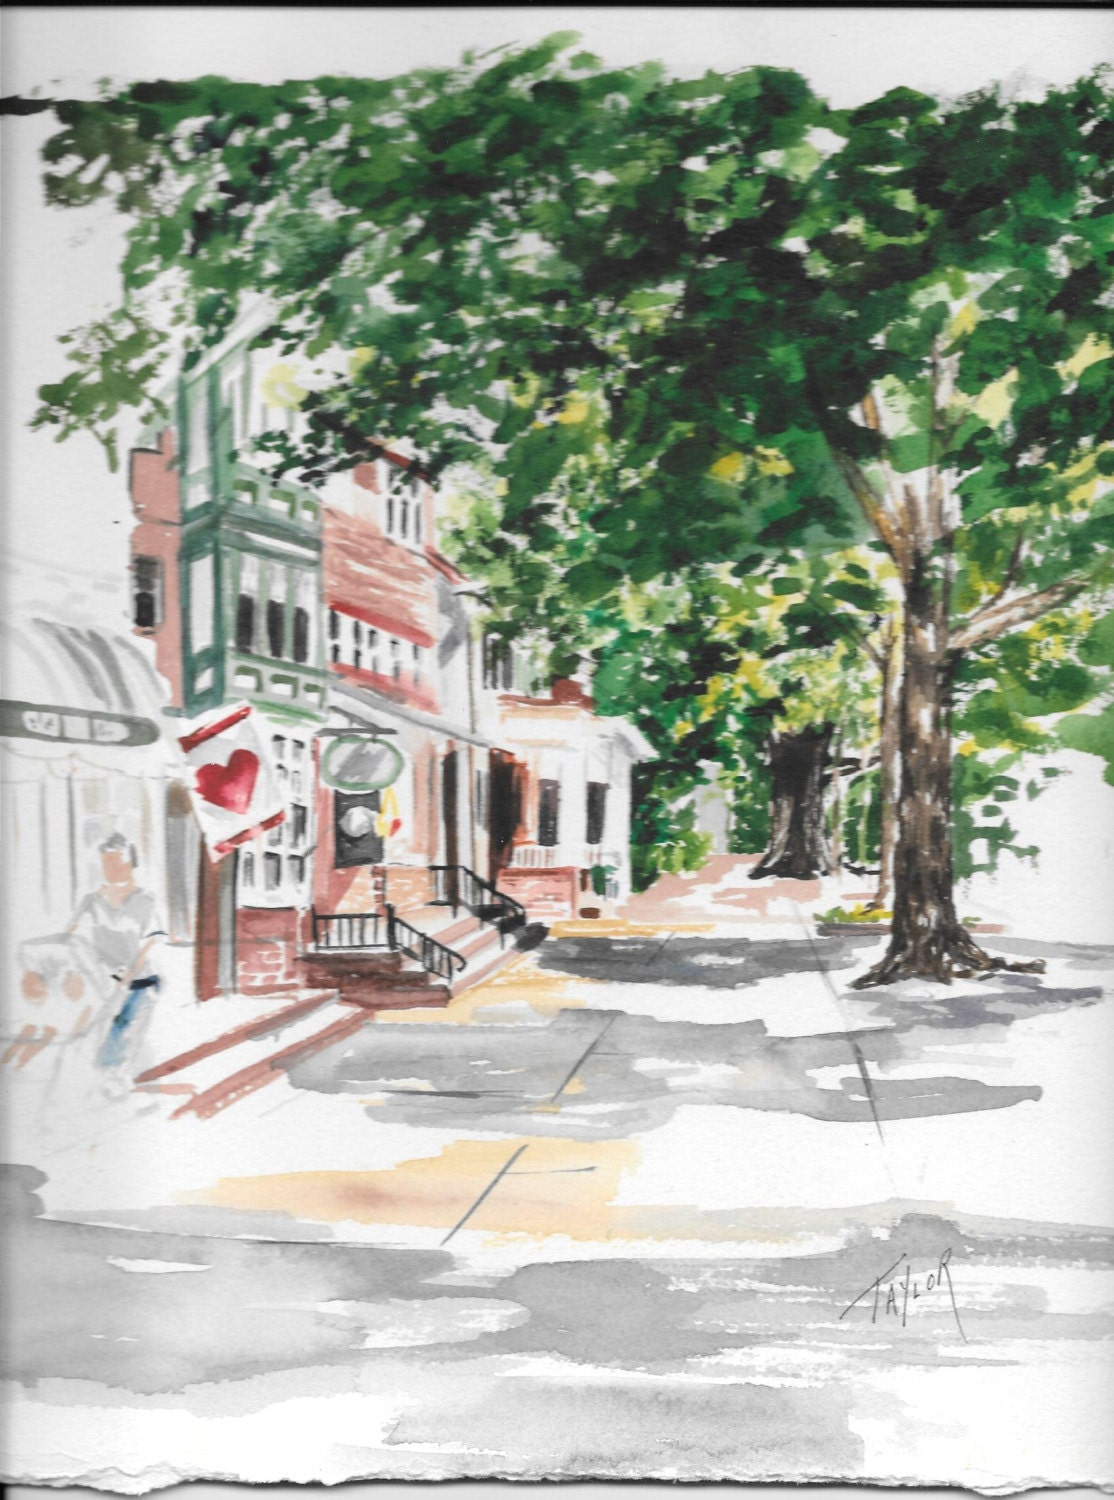 Main Street America By Caroltaylorart On Etsy